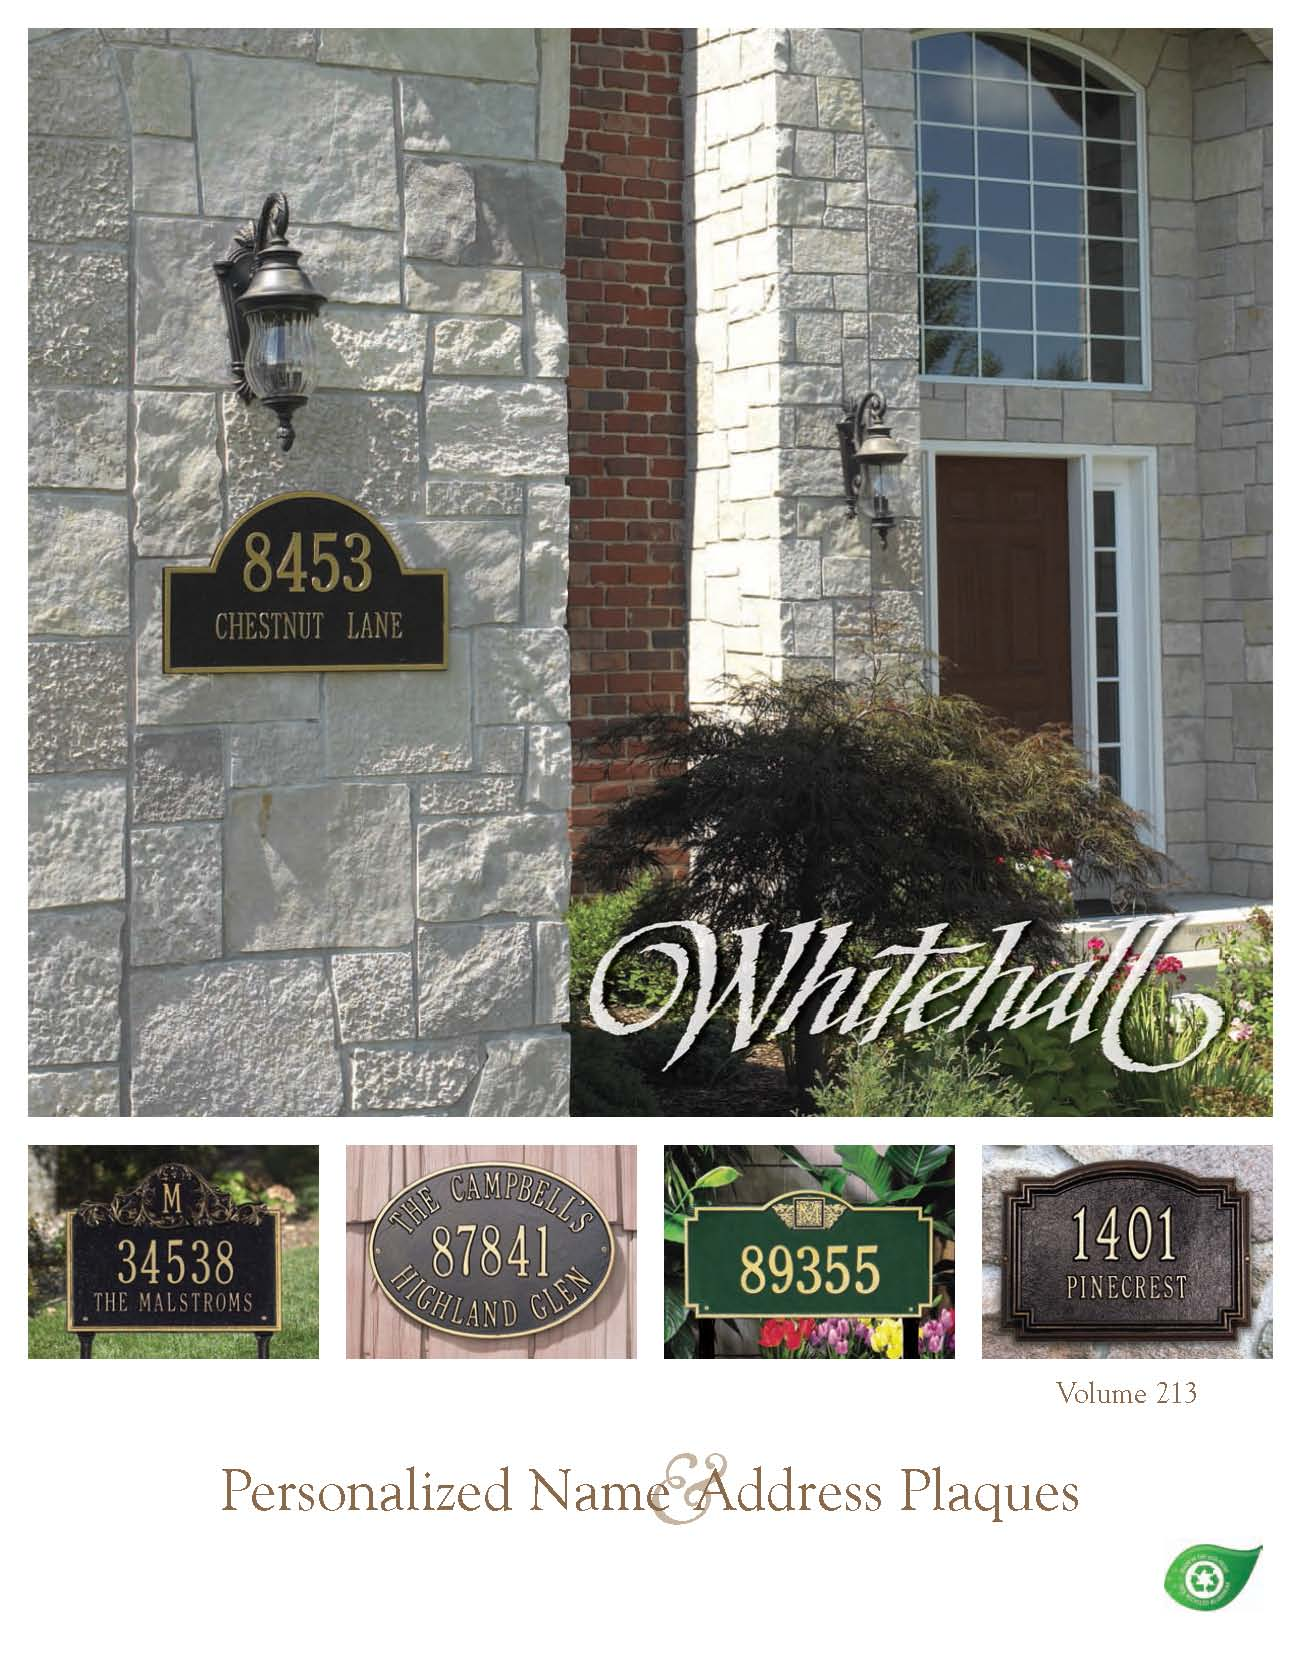 whitehall_catalog_pers_Page_01.jpg